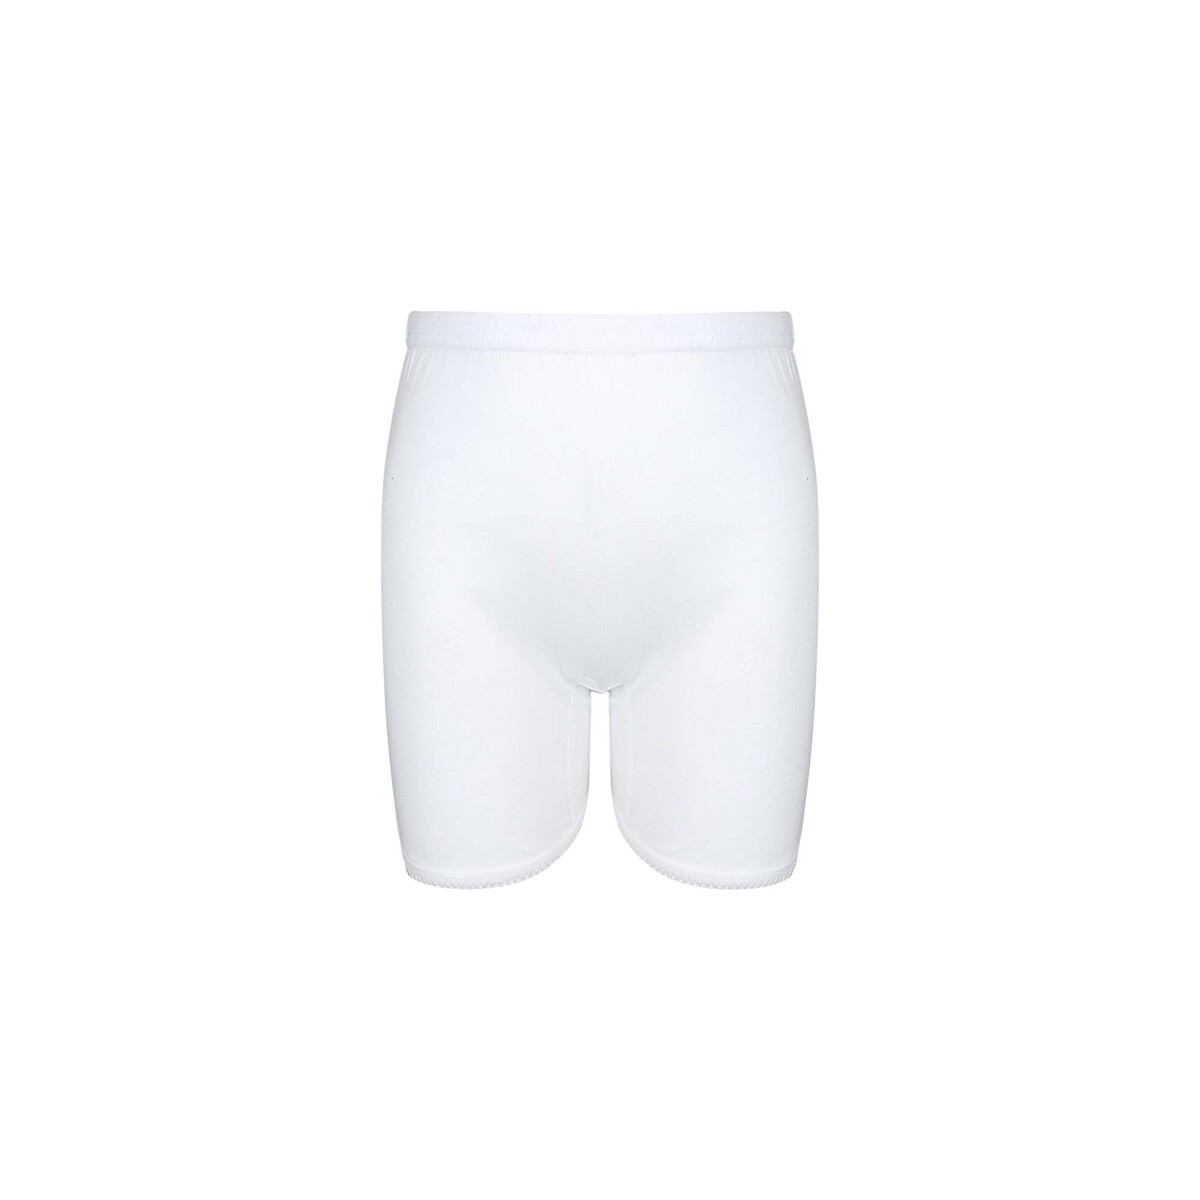 Elite Comfort Girls inner Short White Pack of 3 ECGS 3-4Y